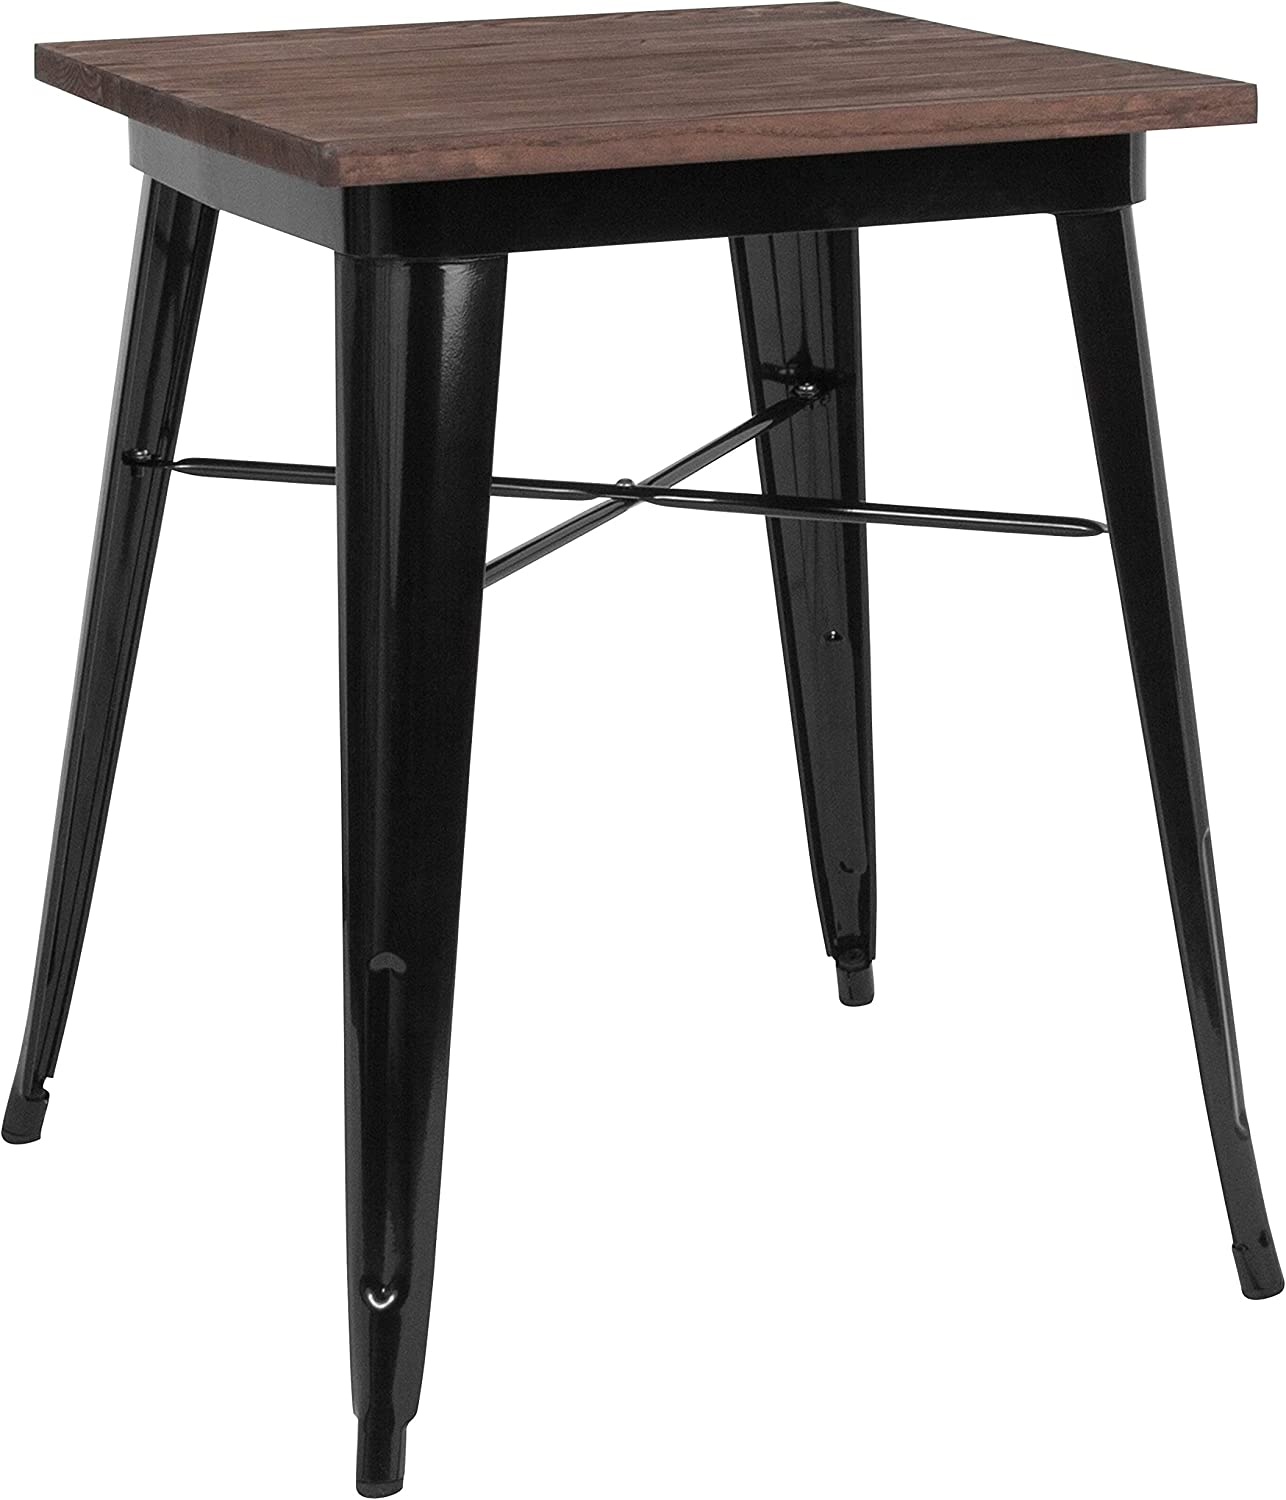 Taylor + Logan 23.5 Inch Square Metal Indoor Table with Walnut Rustic Wood Top, Black